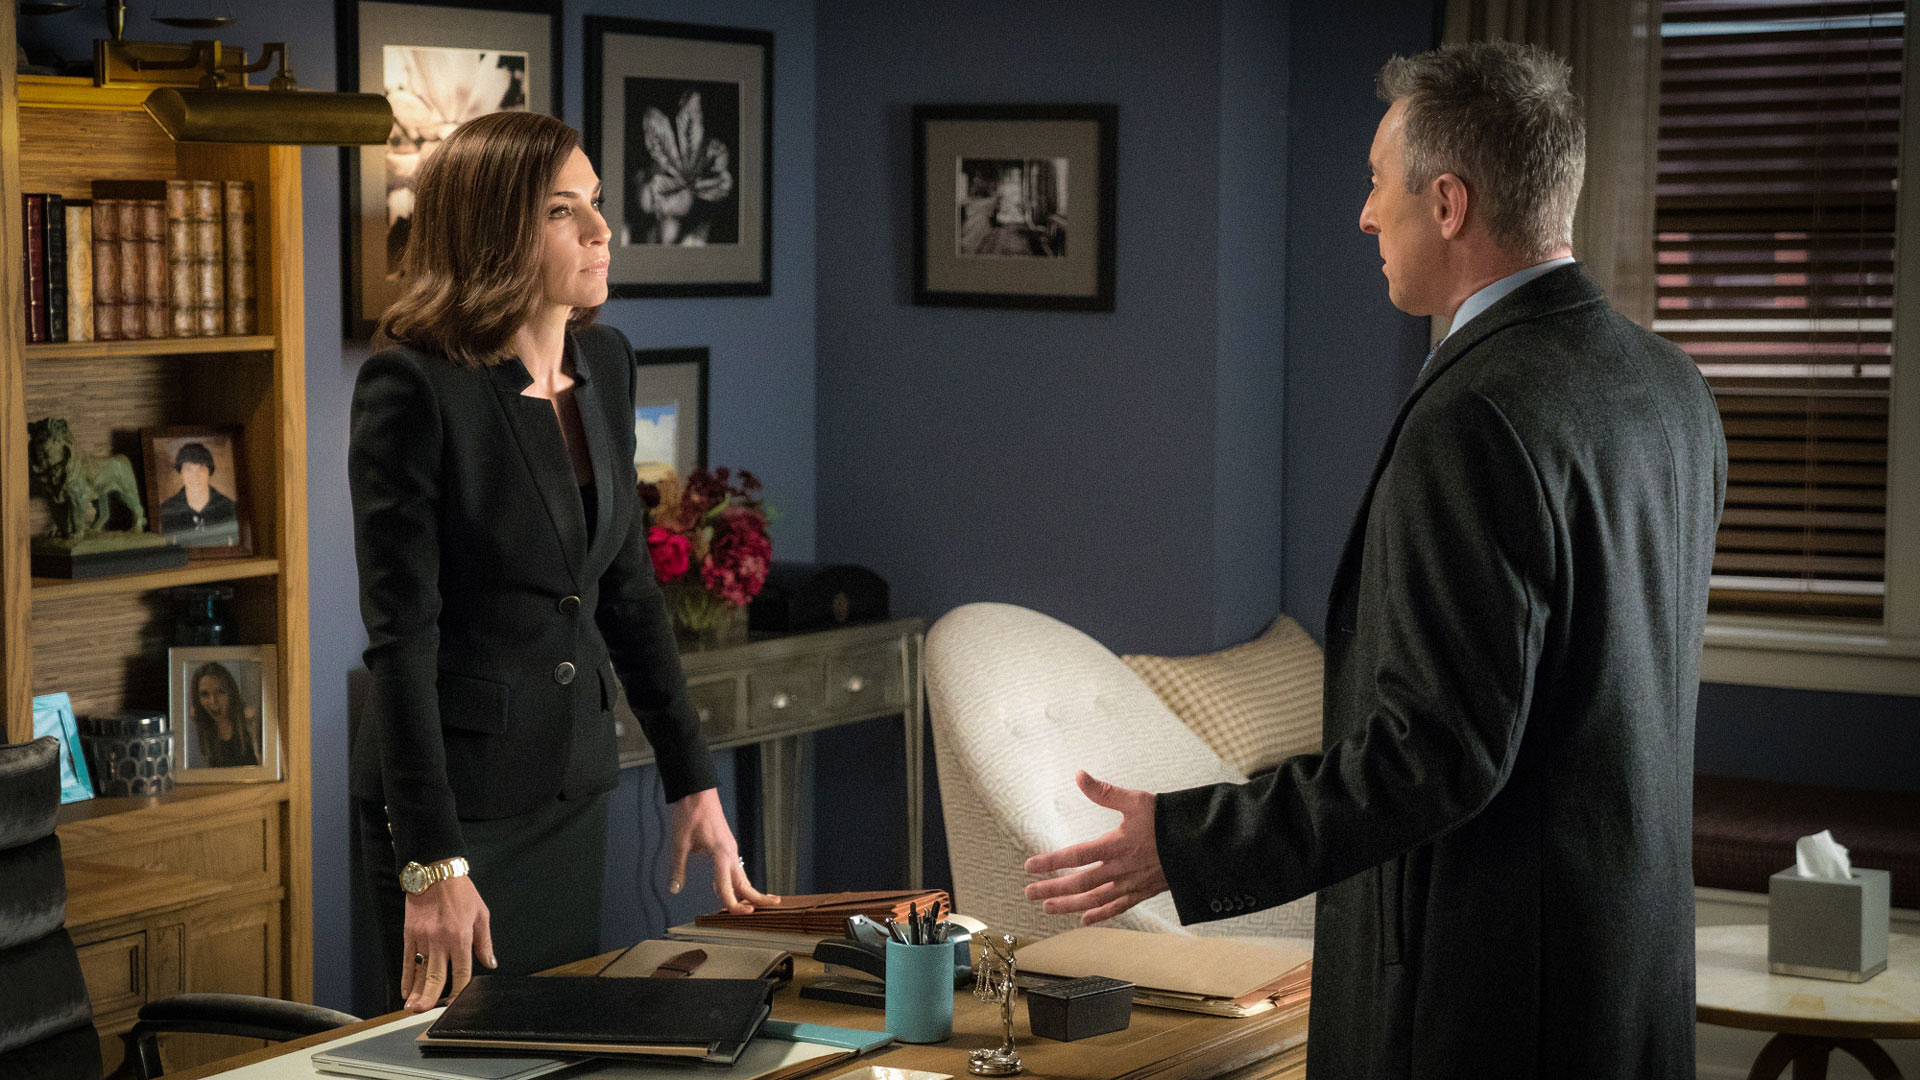 Eli Gold finally told Alicia Florrick about Will's second voicemail on The Good Wife.